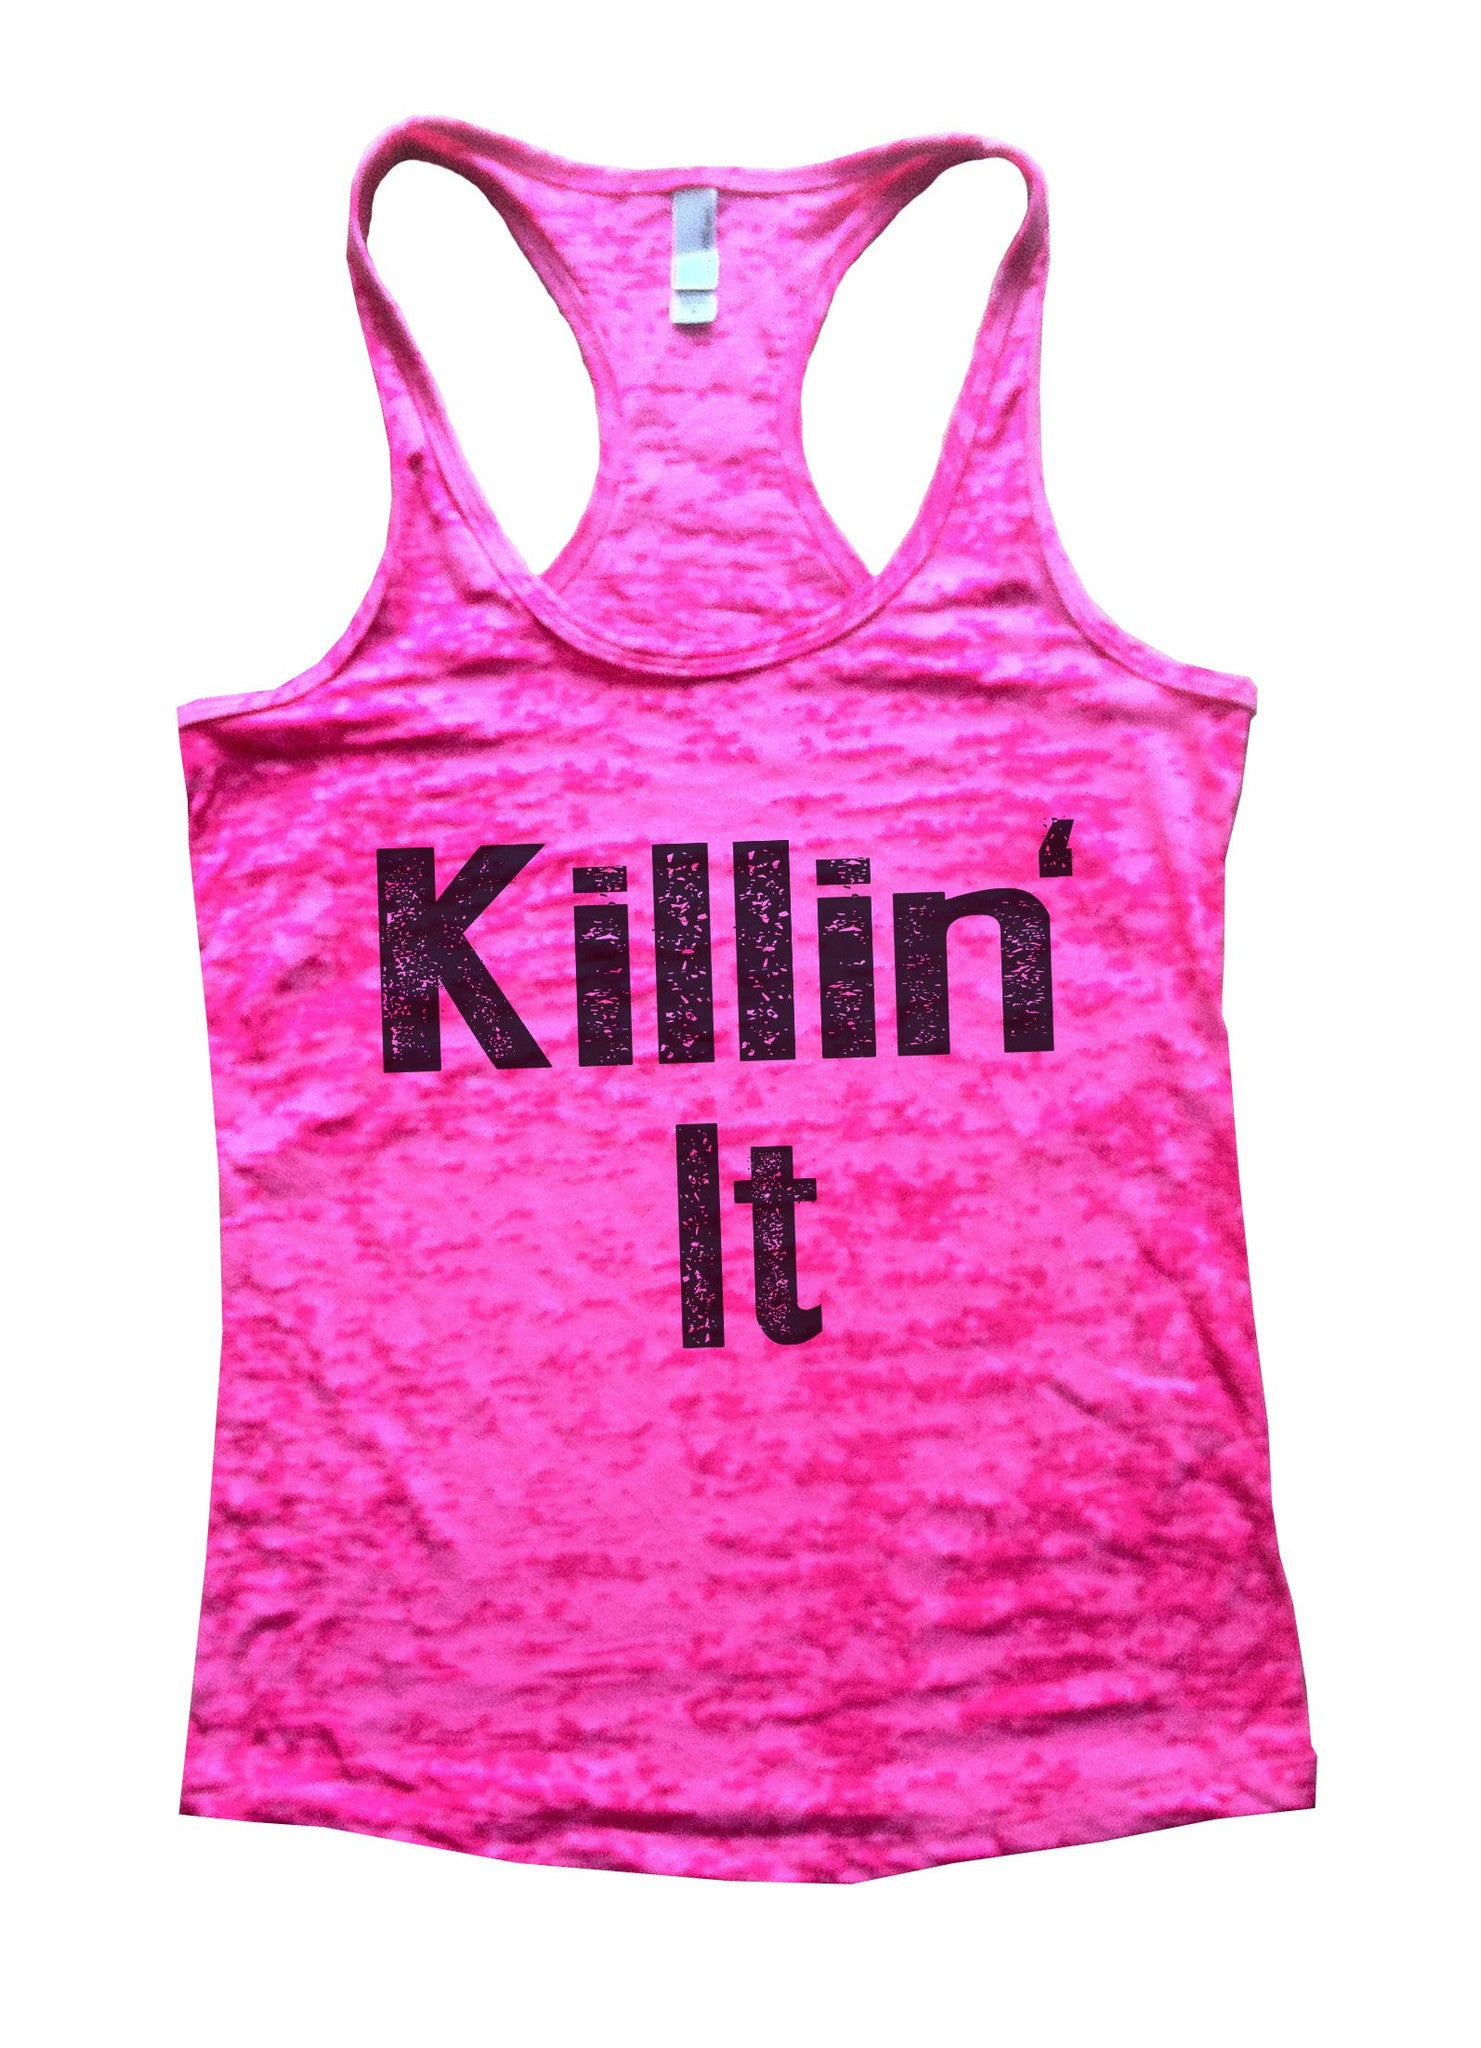 Killin It Burnout Tank Top By BurnoutTankTops.com - 675 - Funny Shirts Tank Tops Burnouts and Triblends  - 3